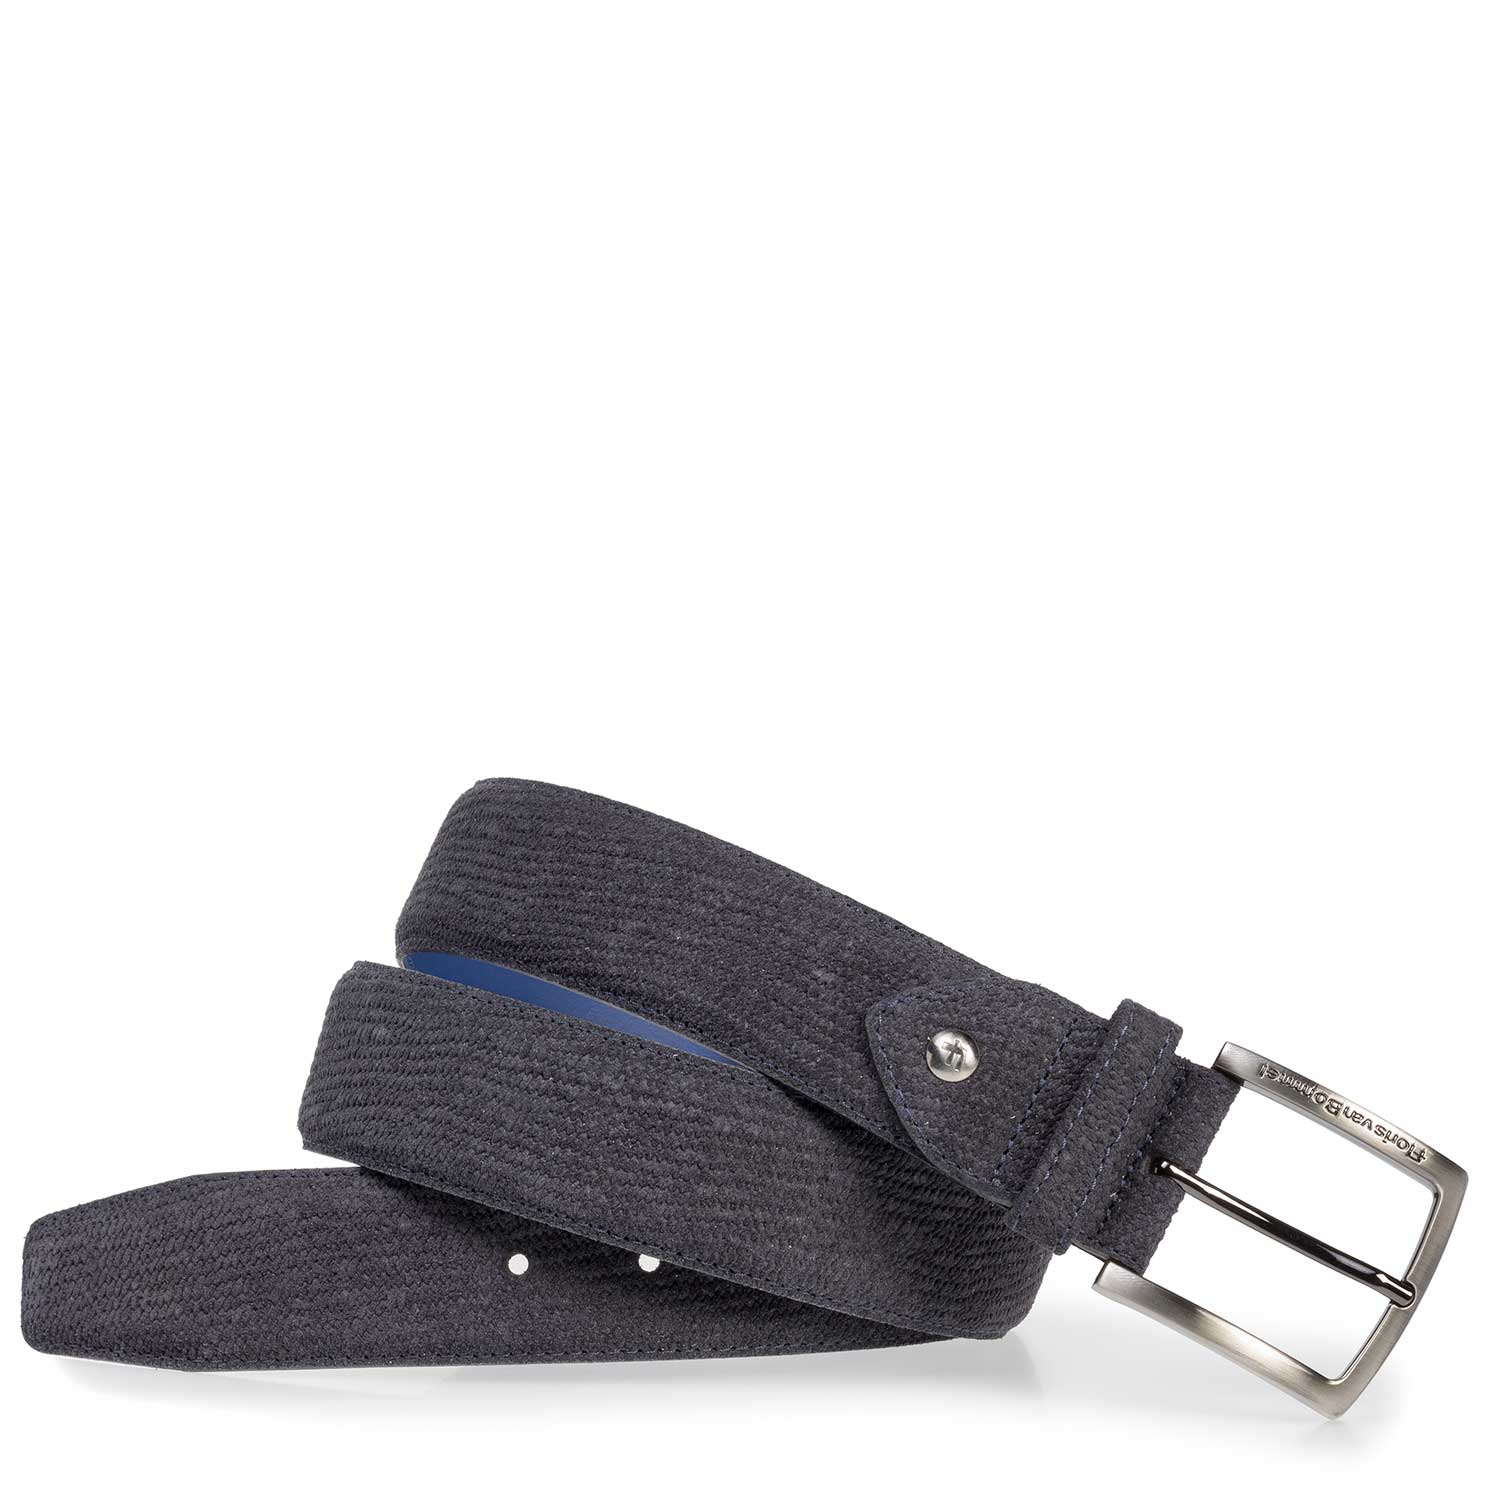 75202/38 - Dark blue suede leather belt with print